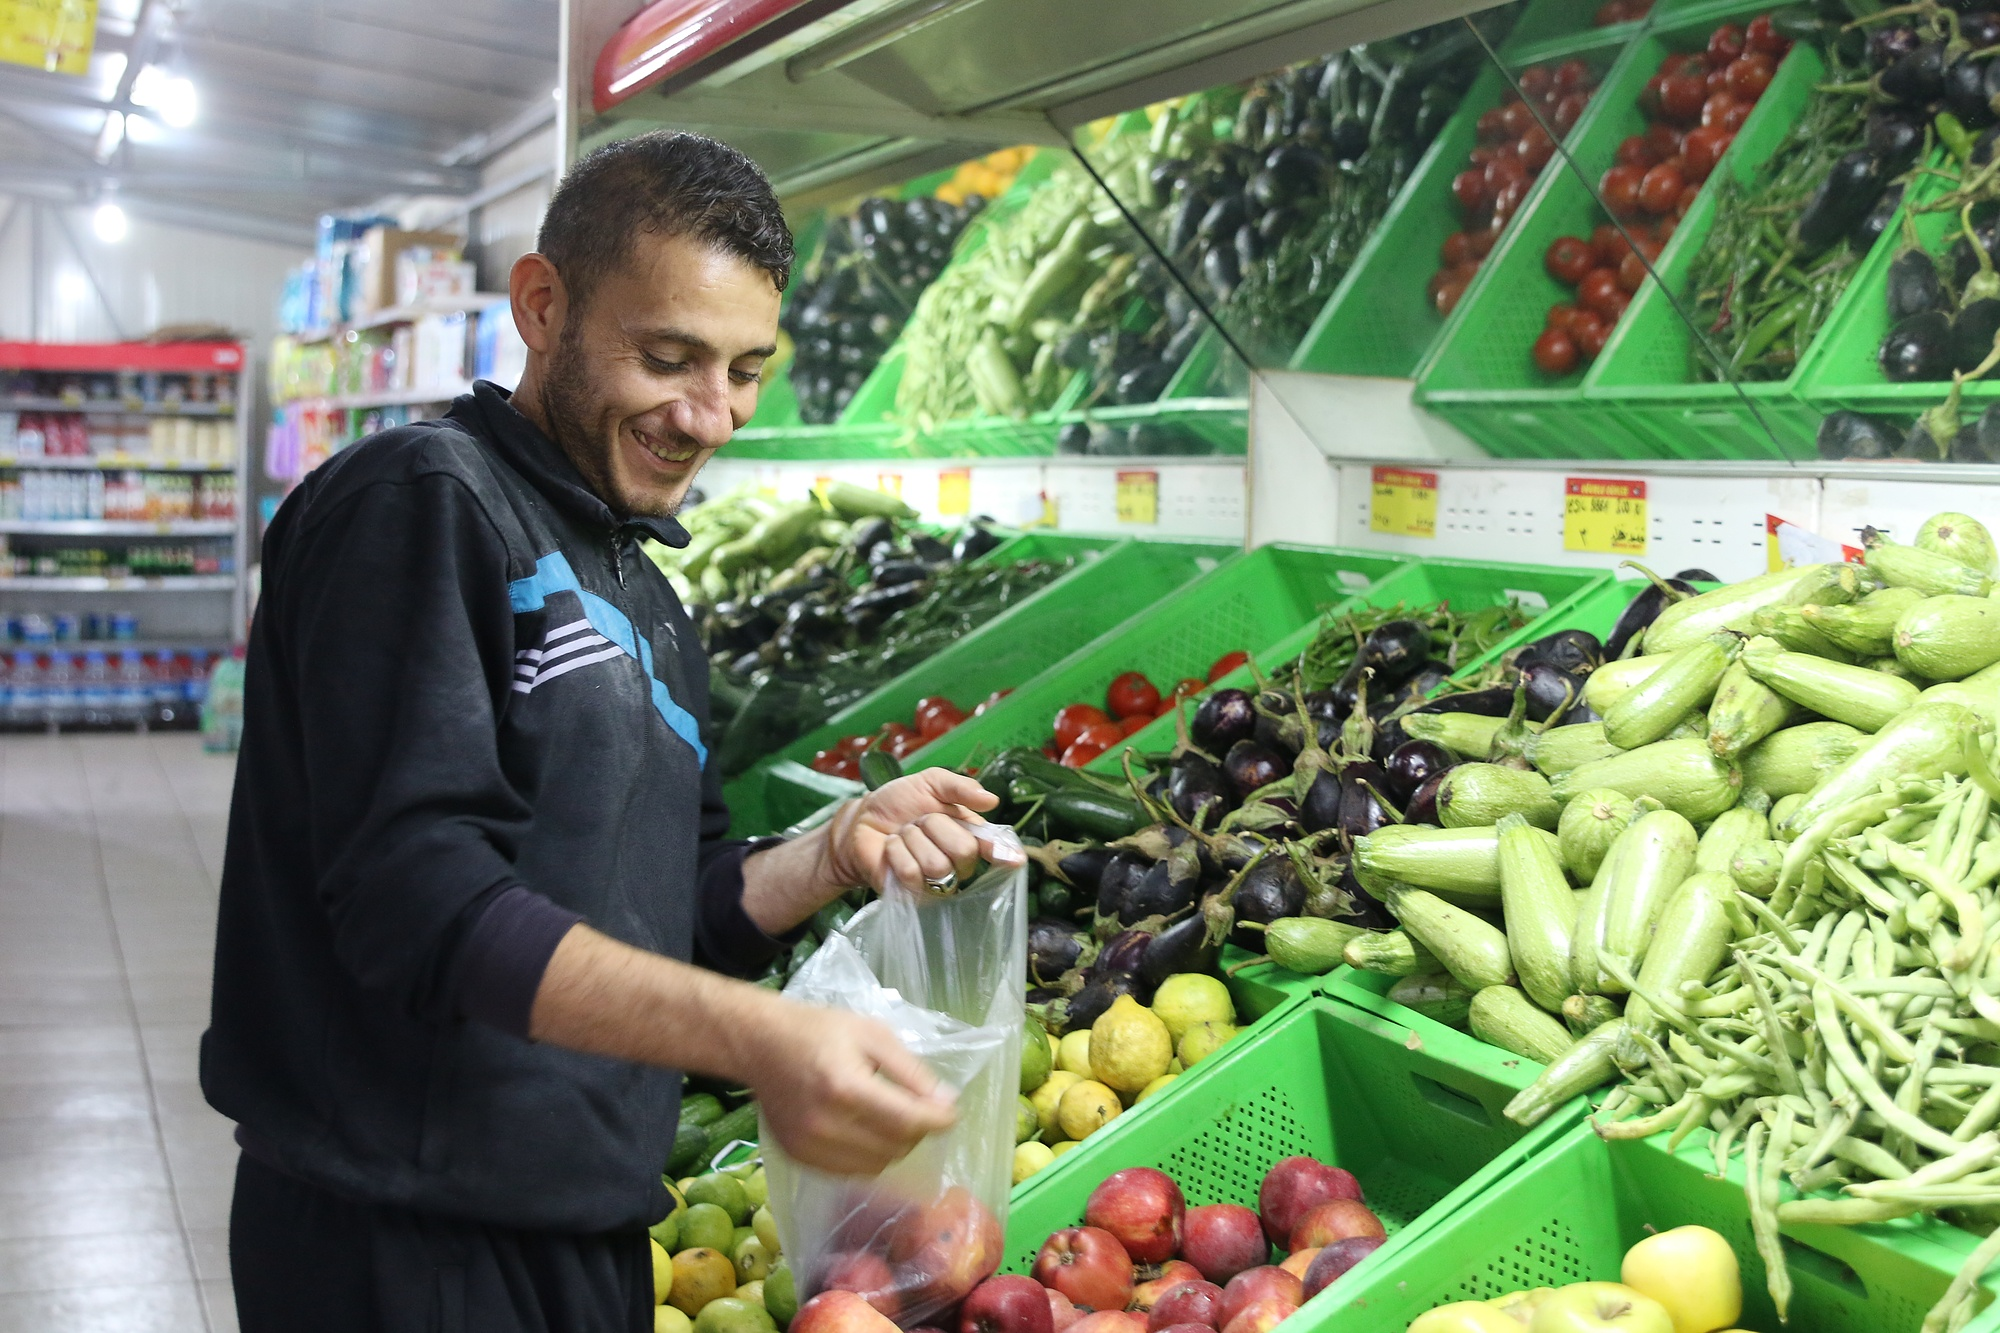 Nidal shops for vegetables in the supermarket of the Boynuyogun refugee camp in Turkey